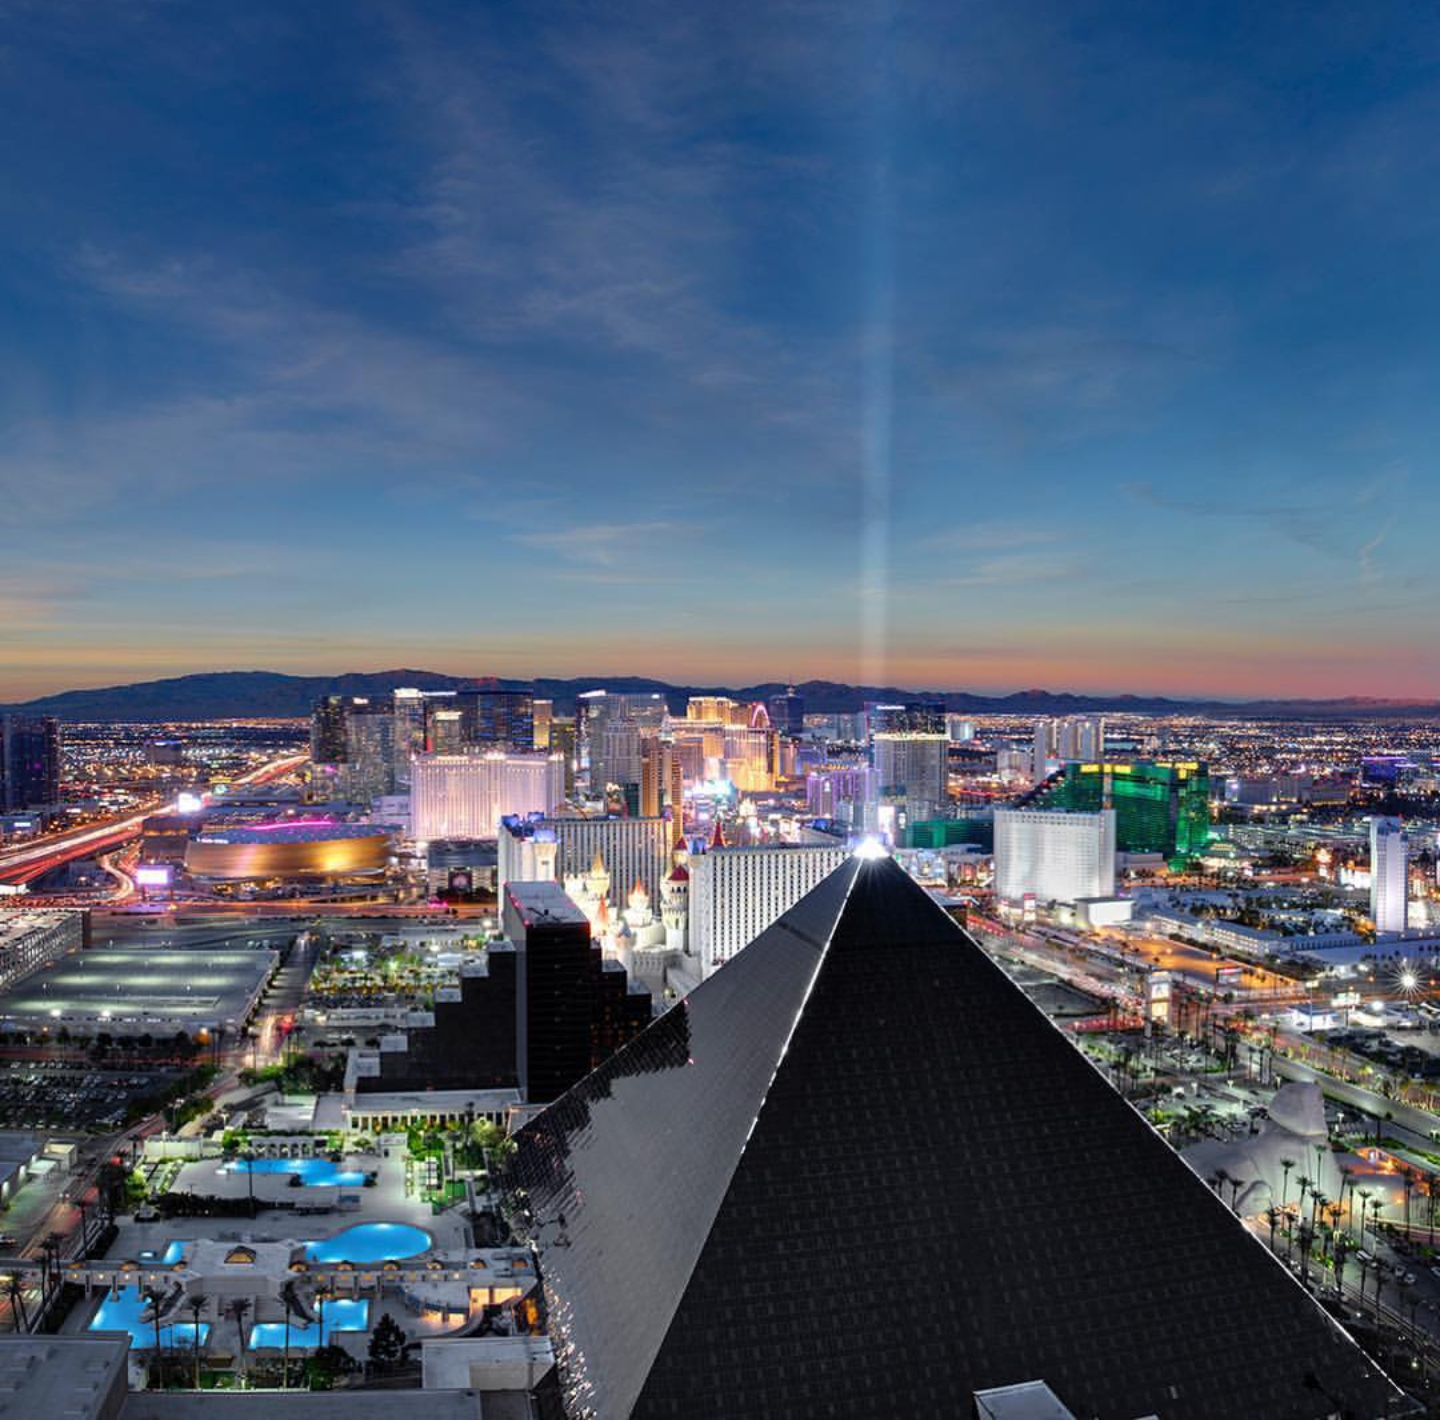 Luxor Hotel and Casino @luxorlv